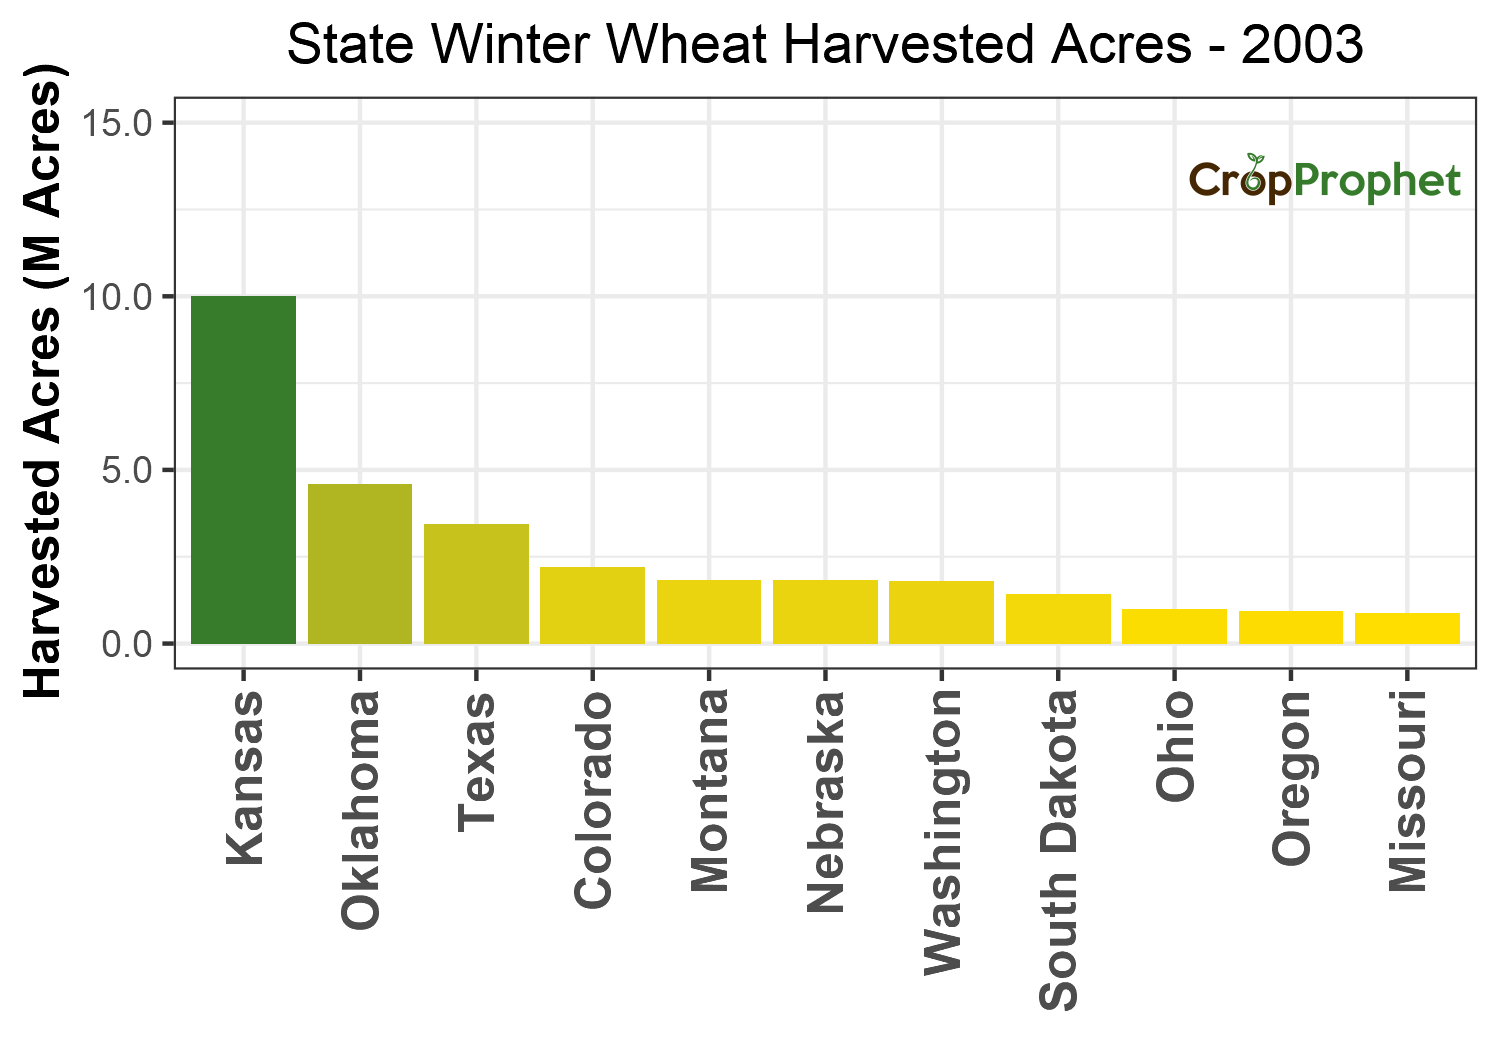 Winter wheat Harvested Acres by State - 2003 Rankings